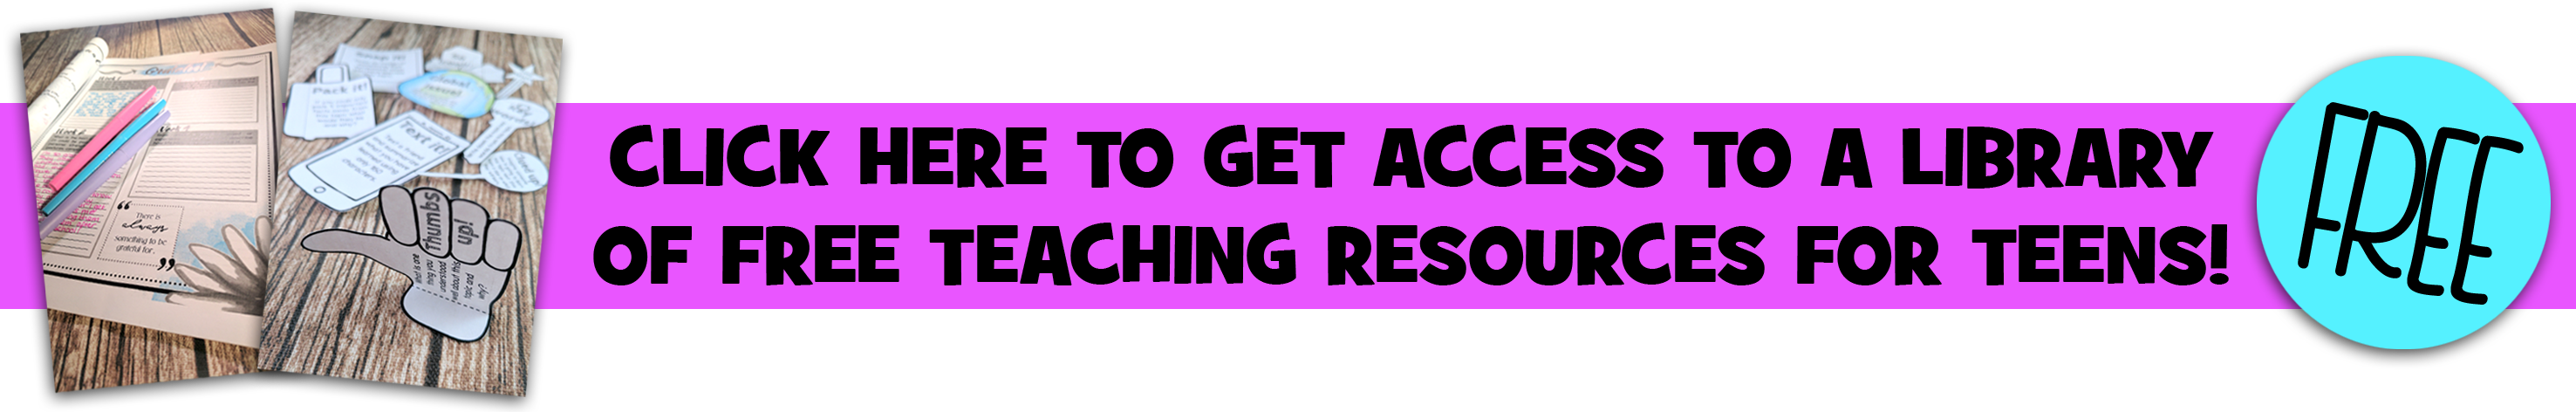 Free teaching resources for teens!